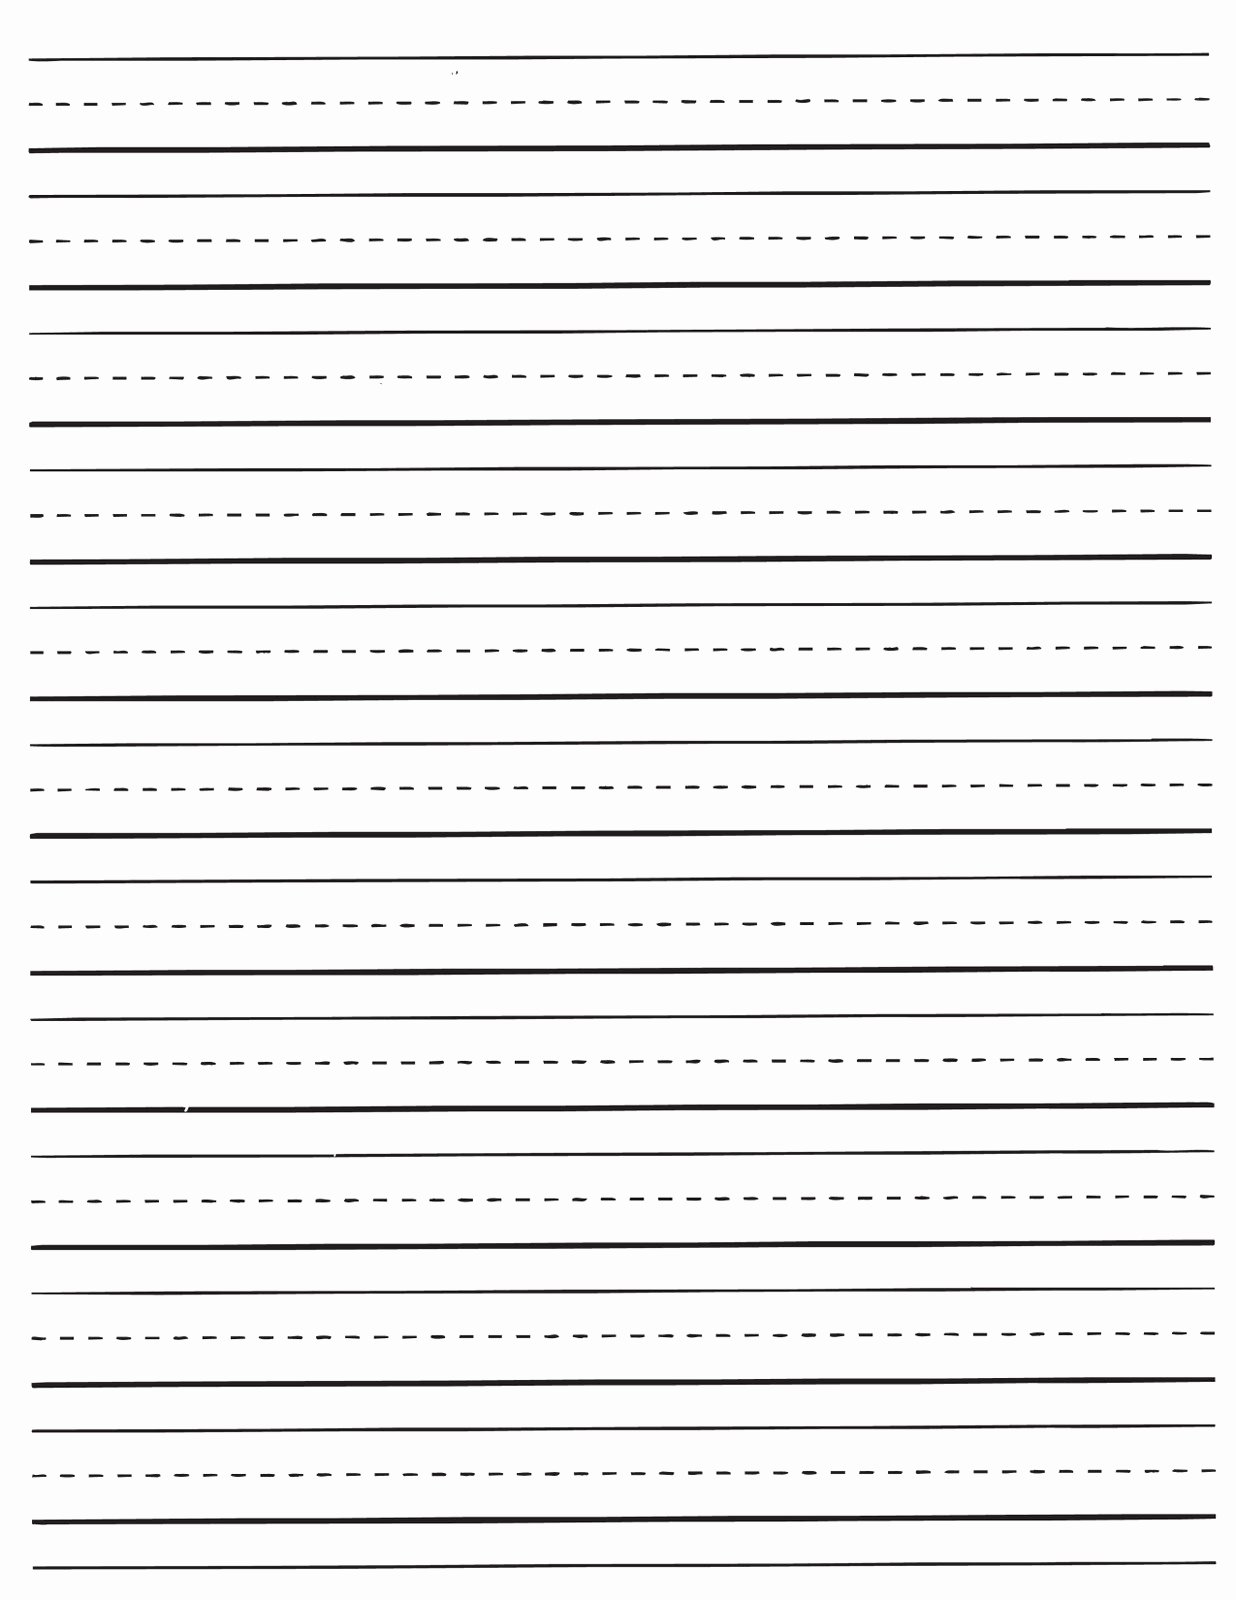 printable dotted lined paper